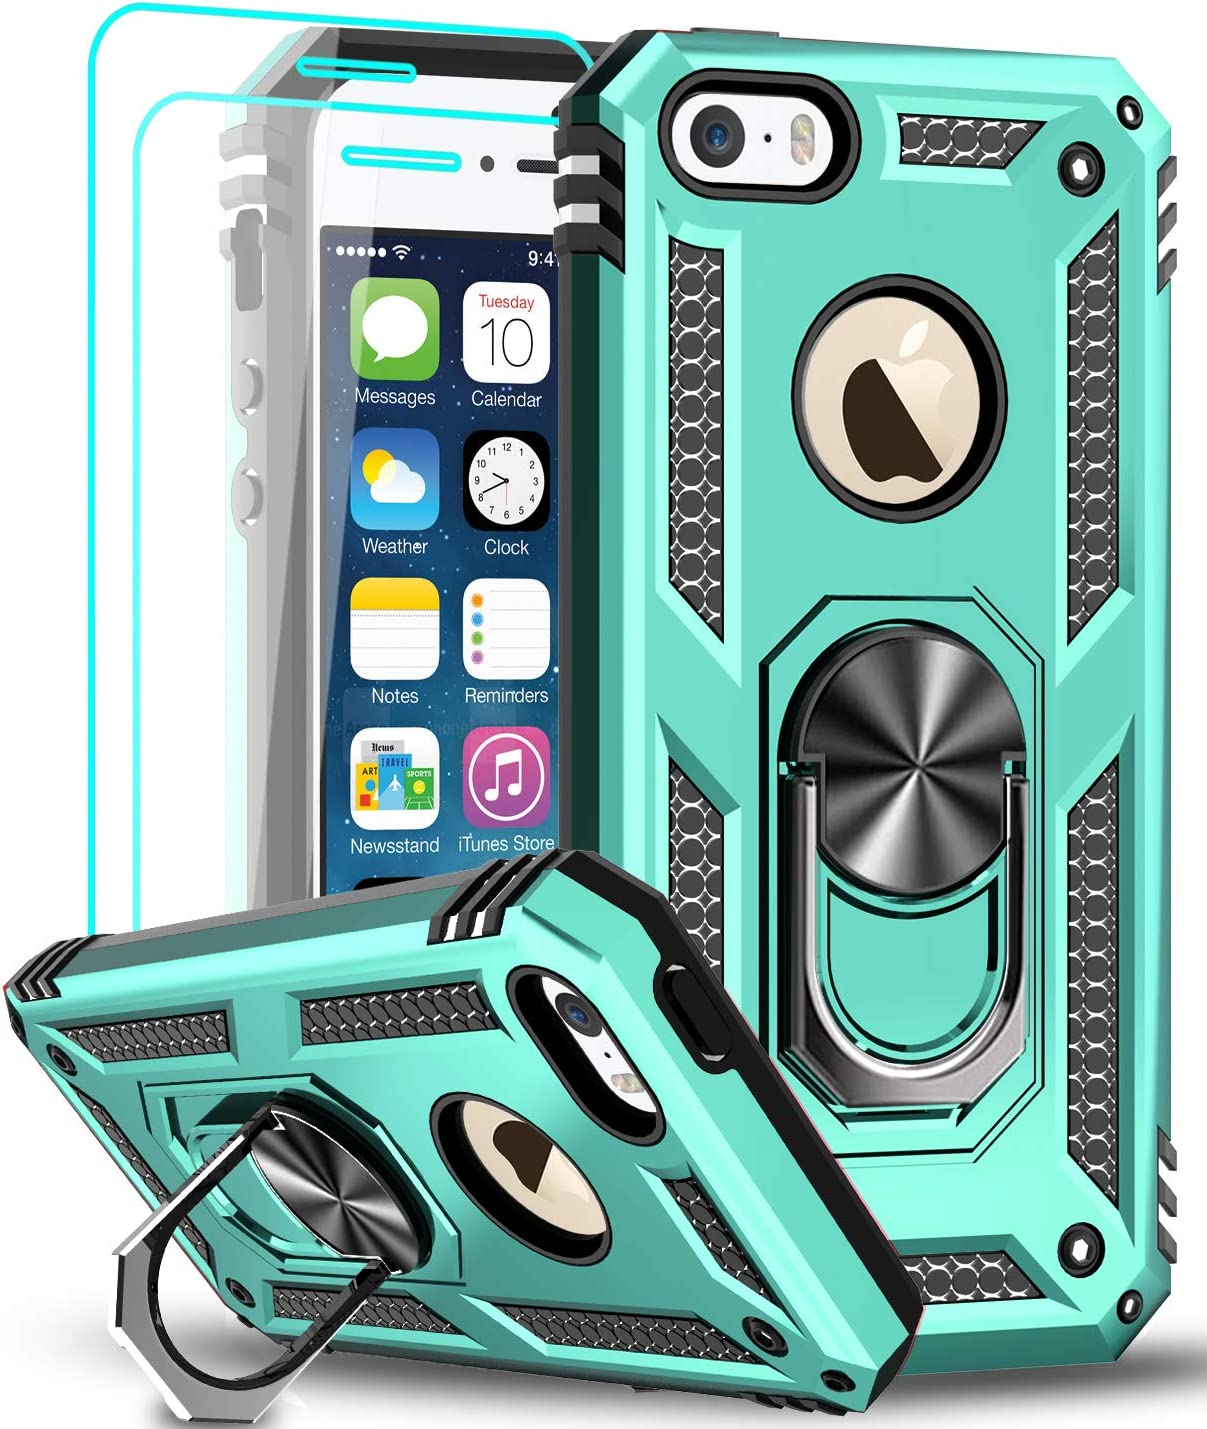 LeYi iPhone se Case (2016), iPhone 5s Case, iPhone 5 Case, Military Grade Armor Full-Body Hybrid Dual Layer Protective Phone Cover Case with Degree Rotating Holder Kickstand for iPhone 5/5s/se, Mint